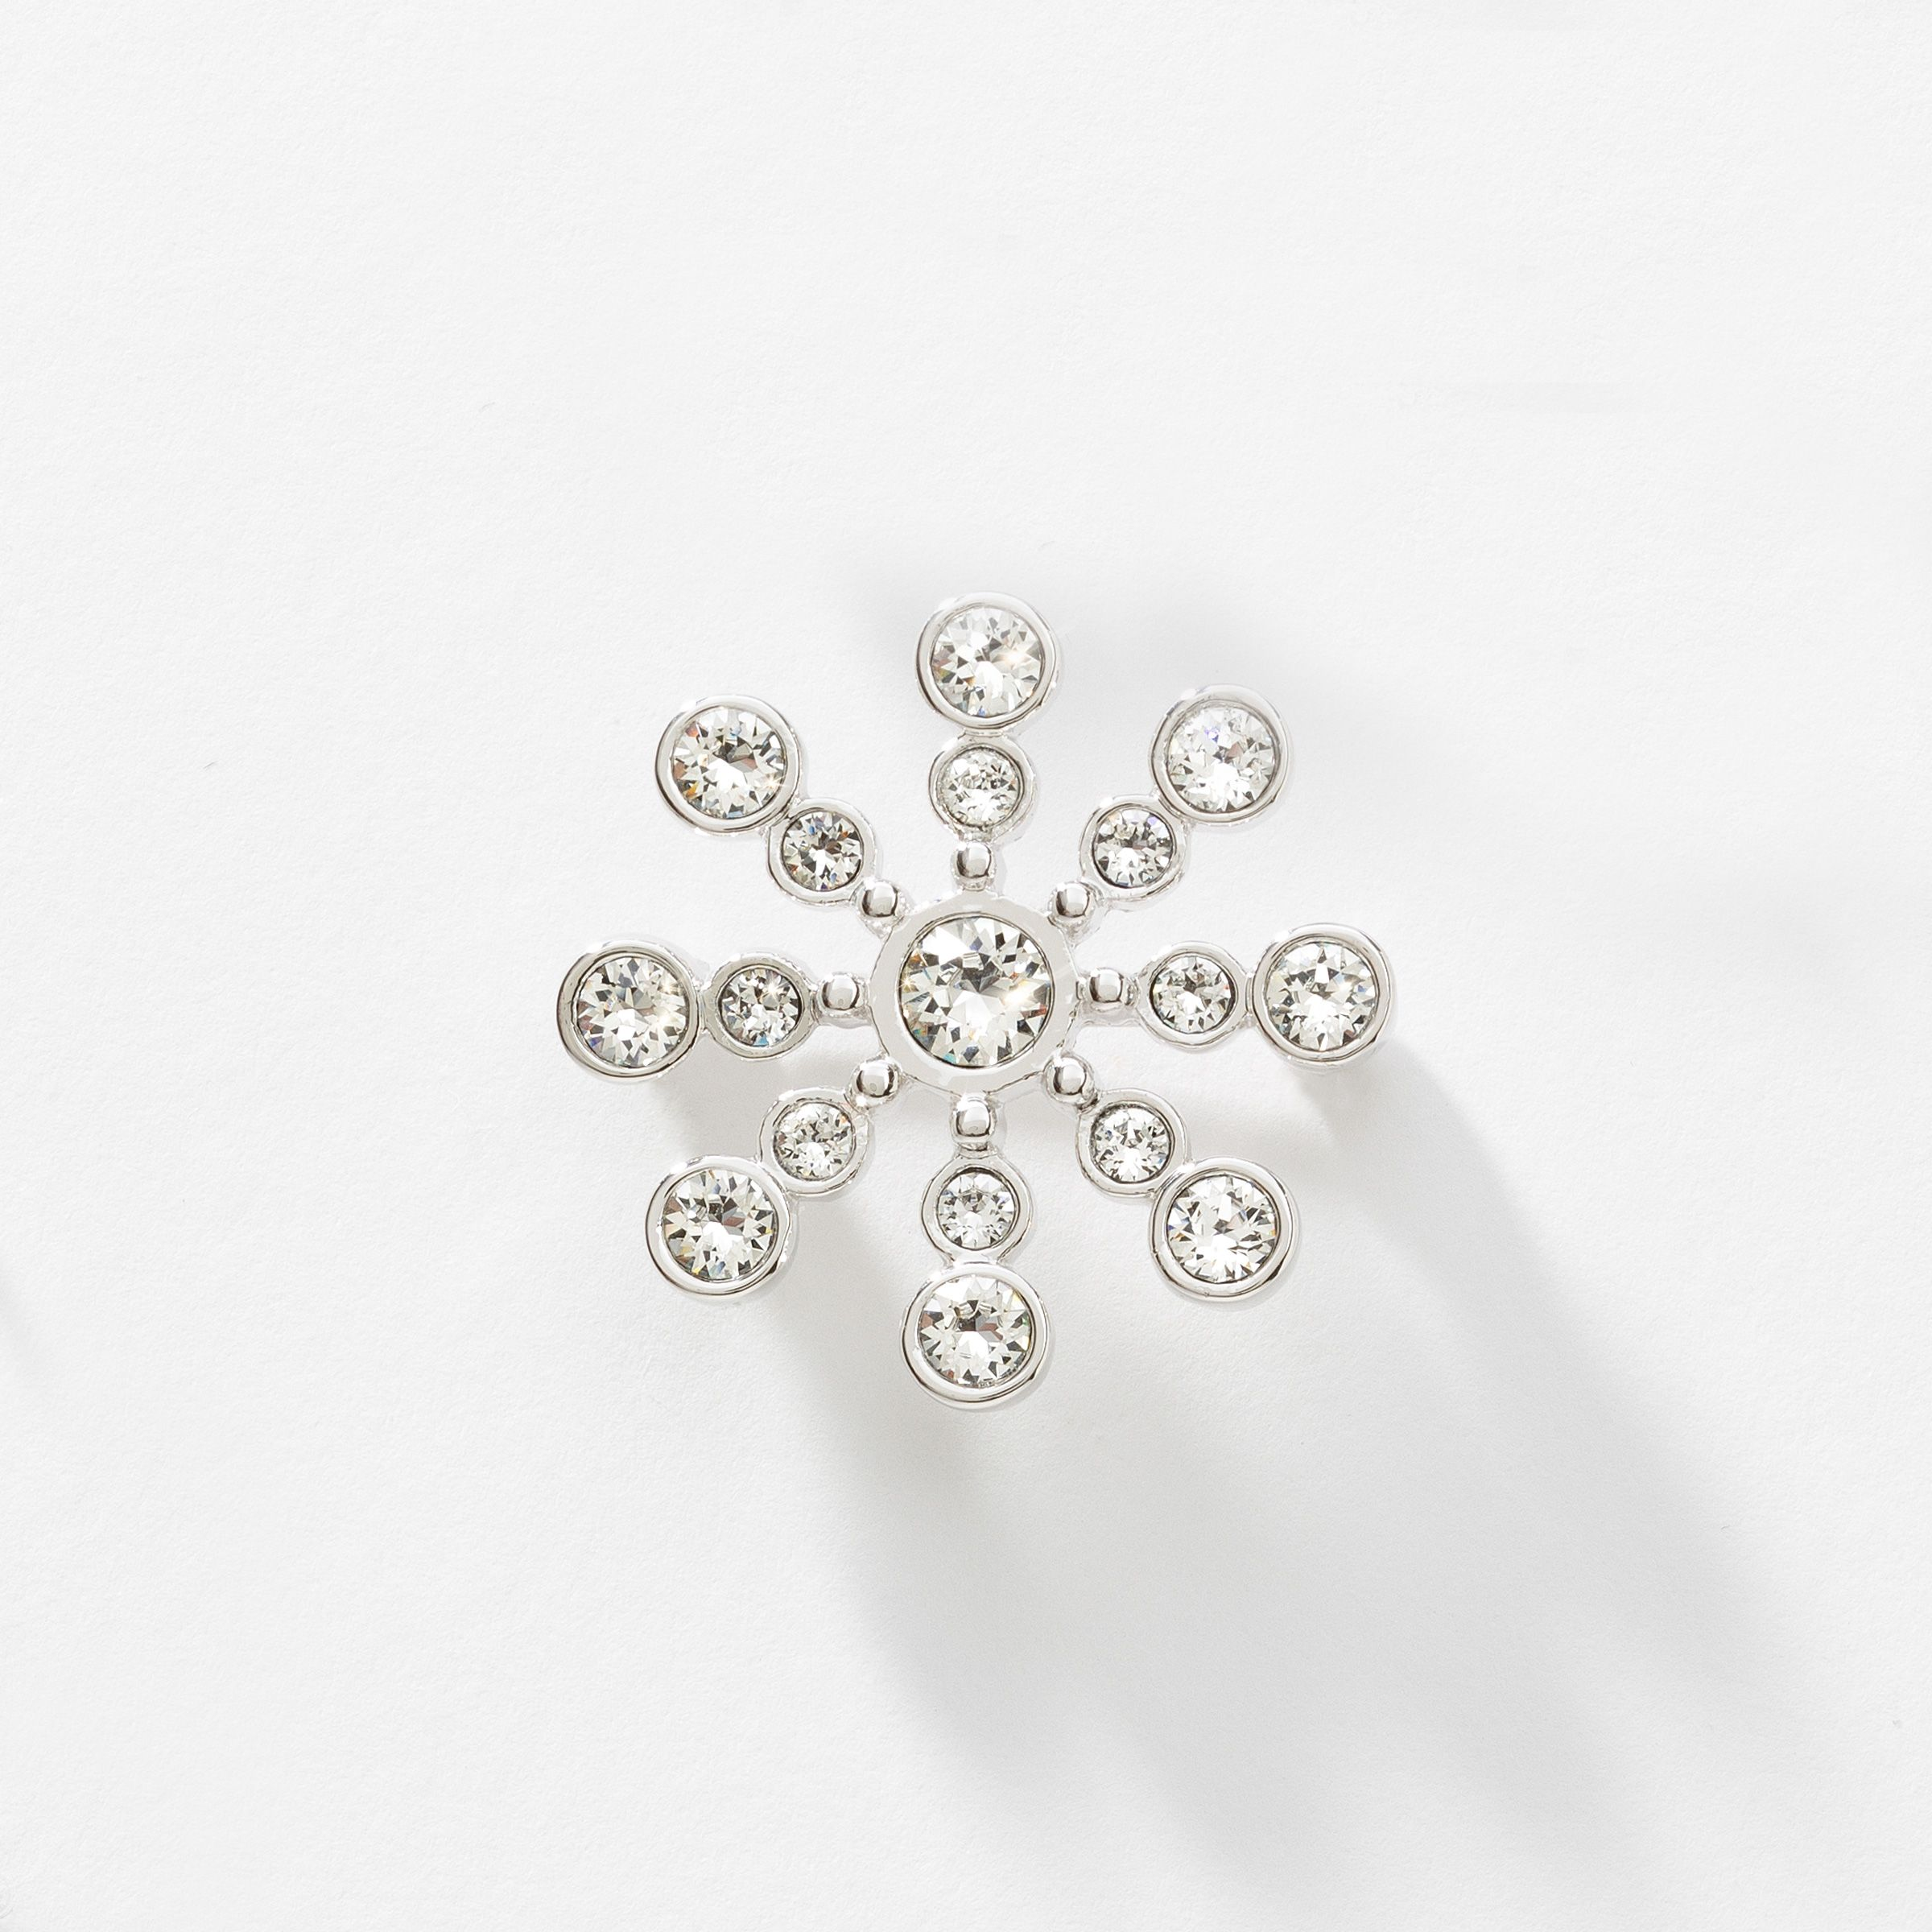 Touchstone Crystal by Swarovski u2013 Jewelry Home Parties  sc 1 st  Pinterest & Pin by High End Costume Jewelry on Winter Wonderland | Pinterest ...